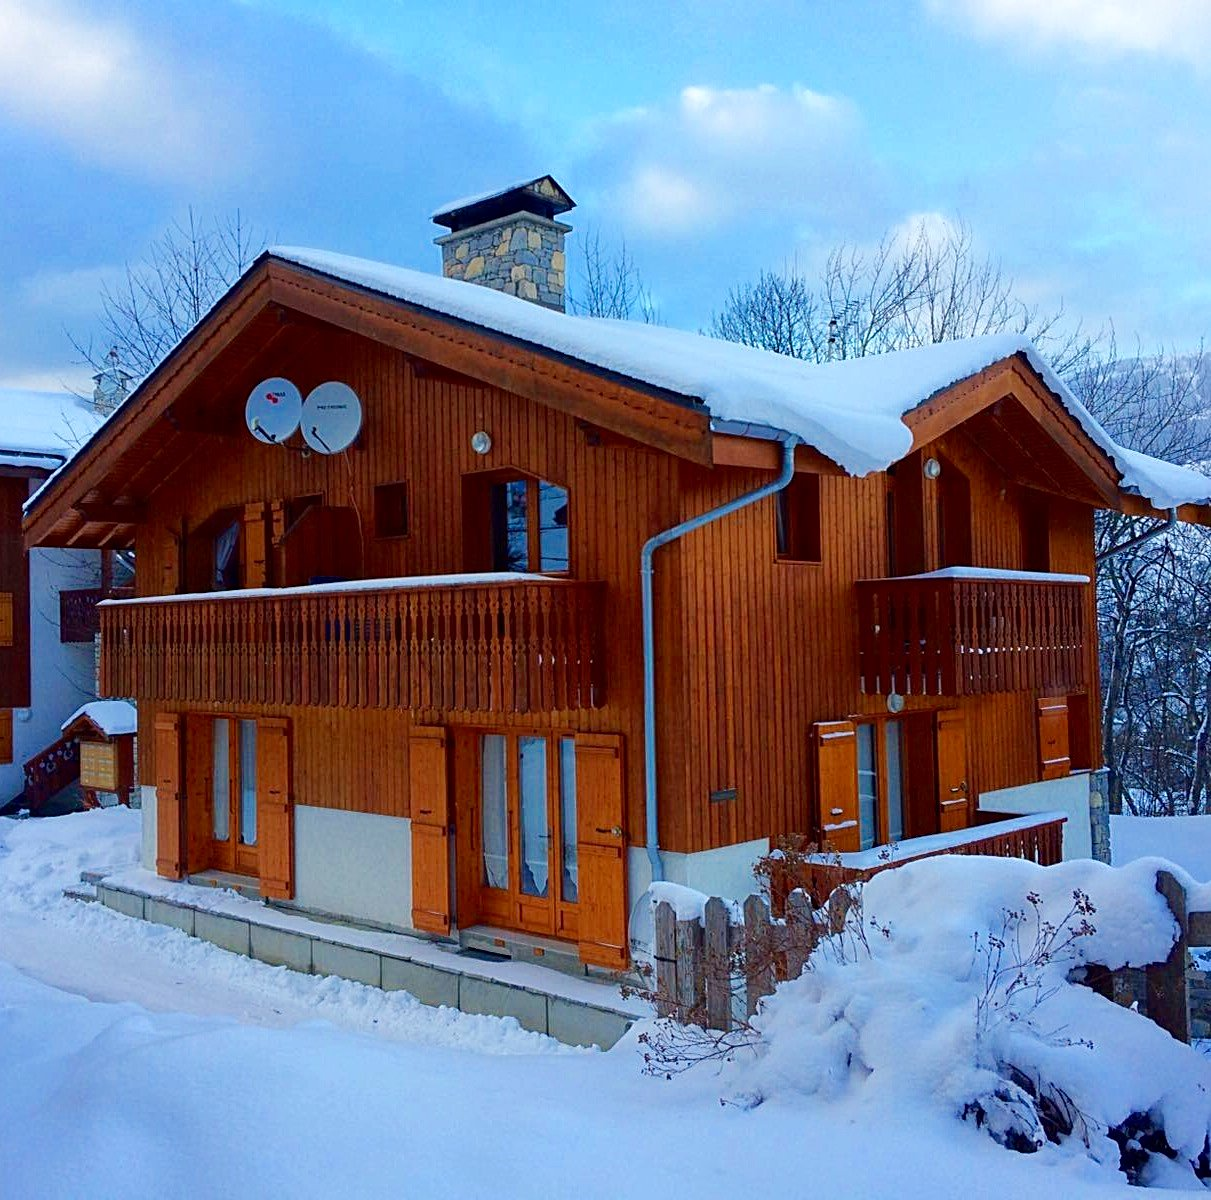 Chalet in snow